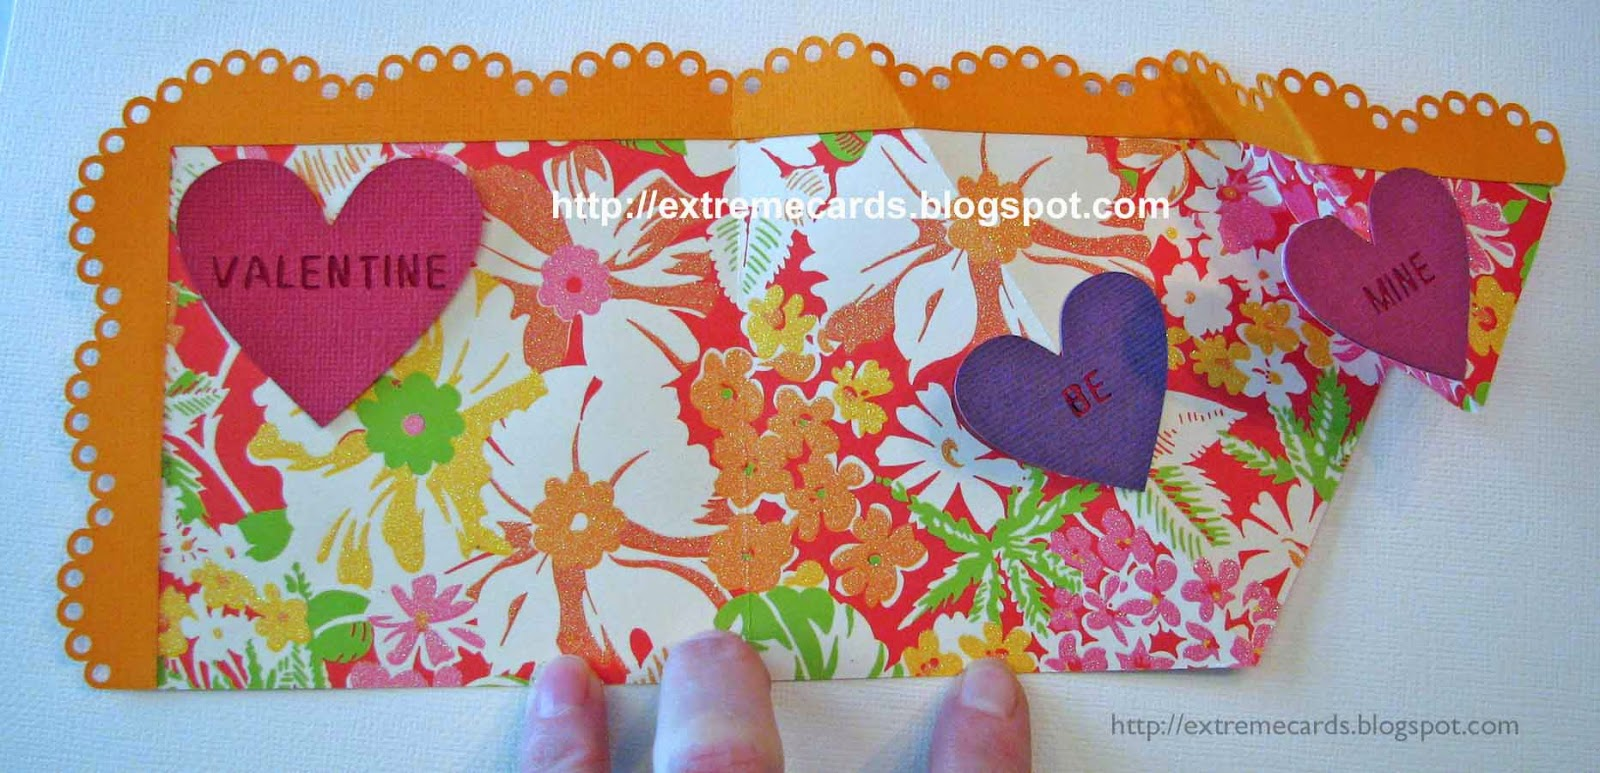 place large heart on pop up card